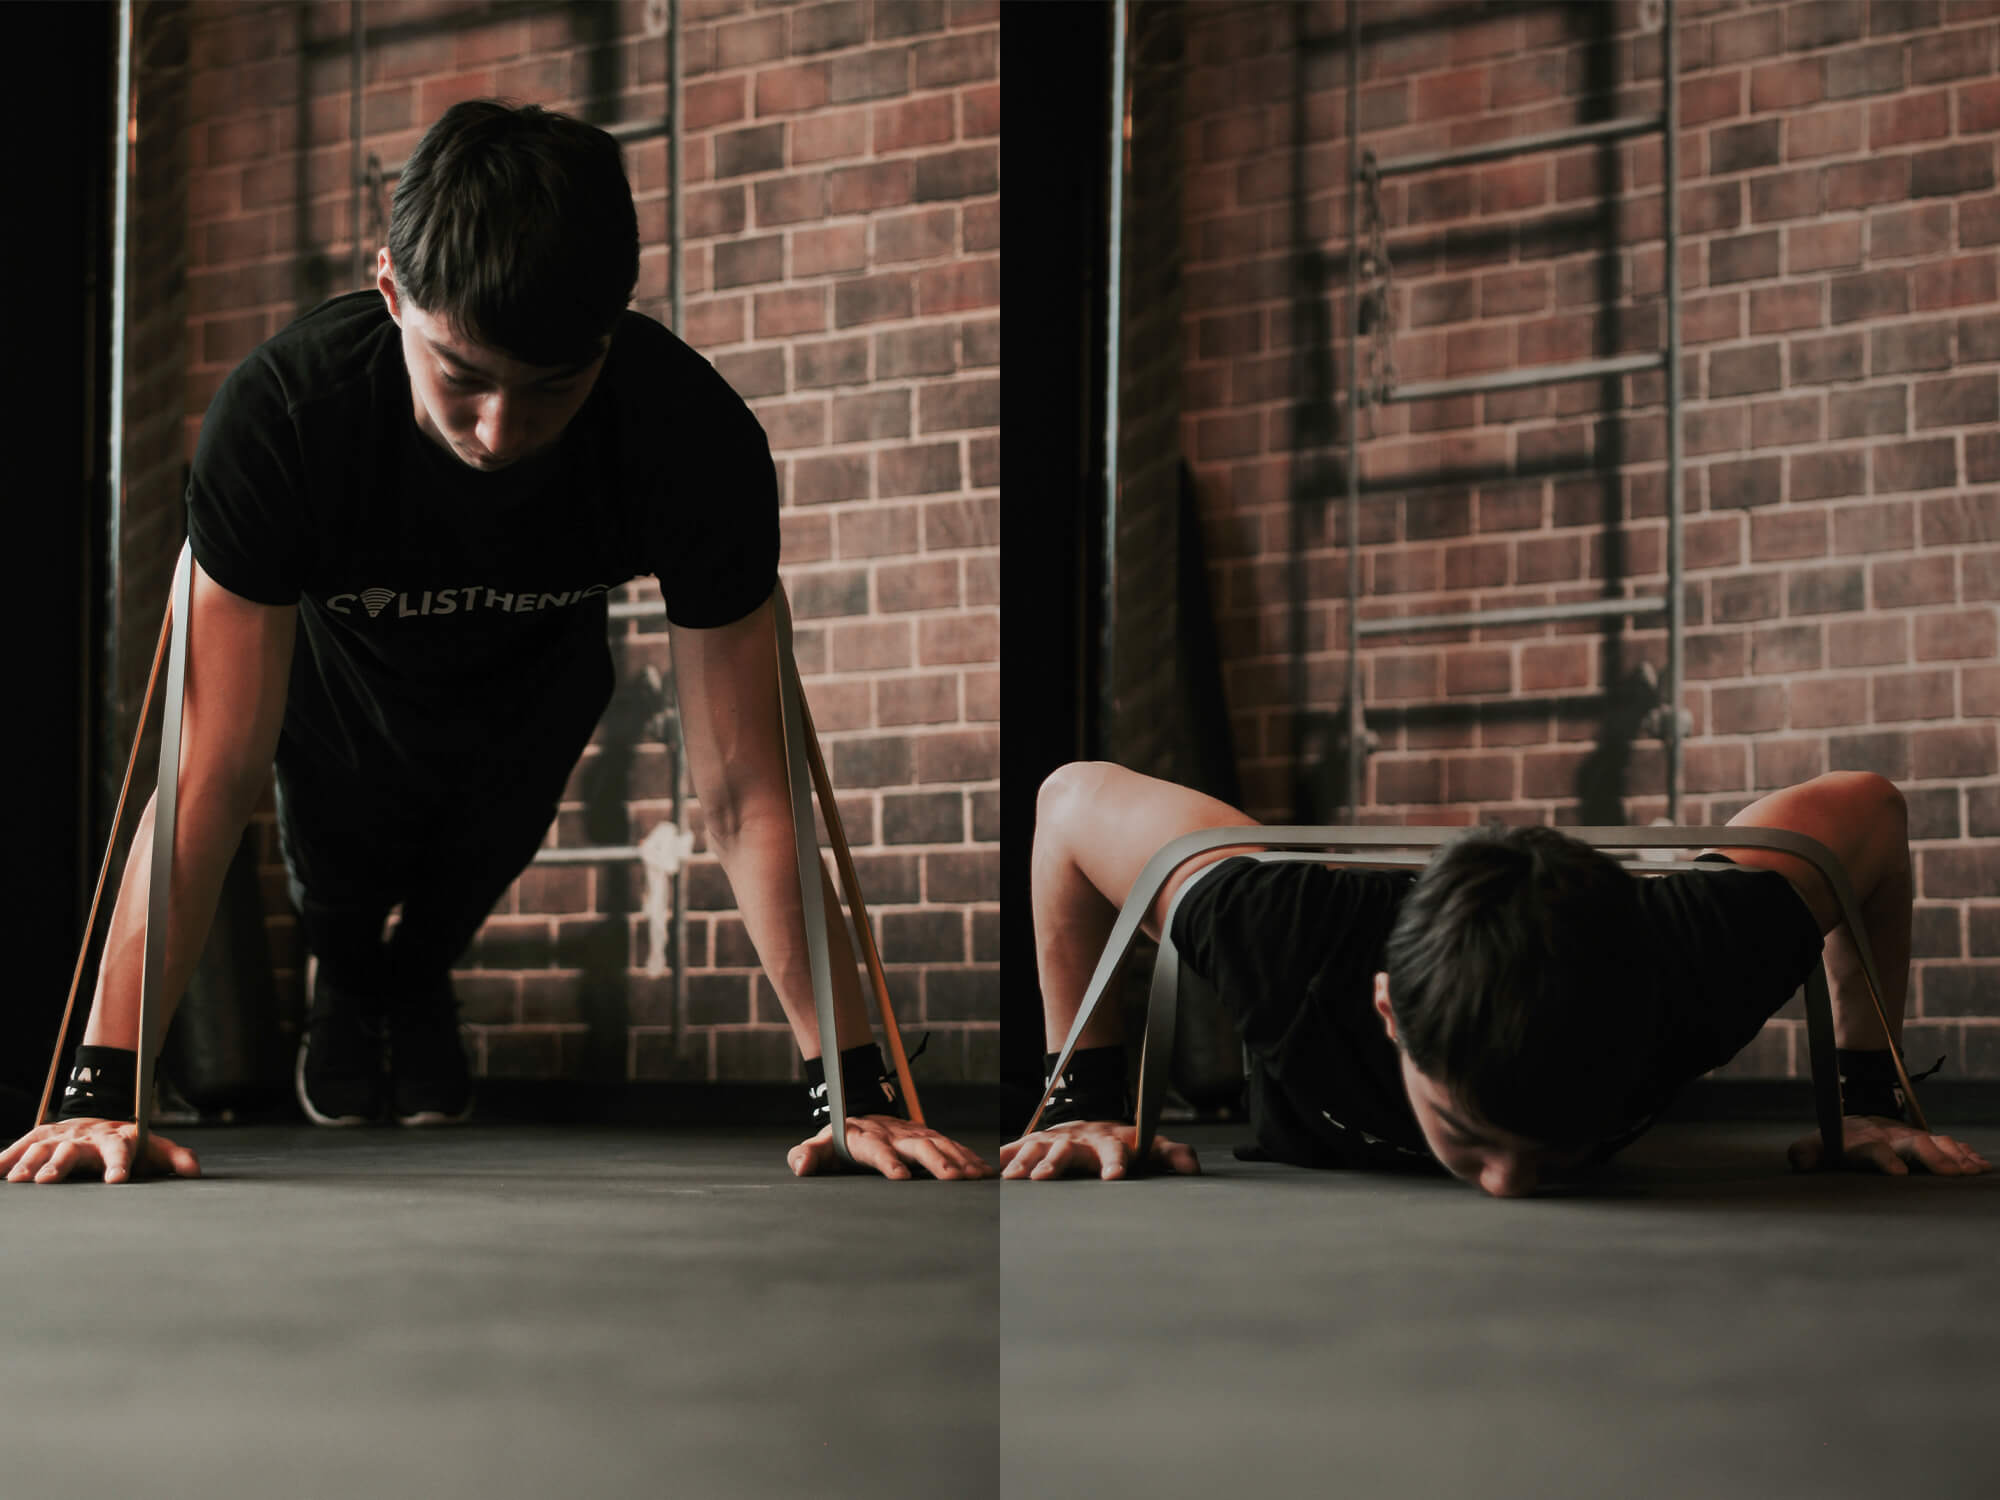 guy doing push ups with a resistance band